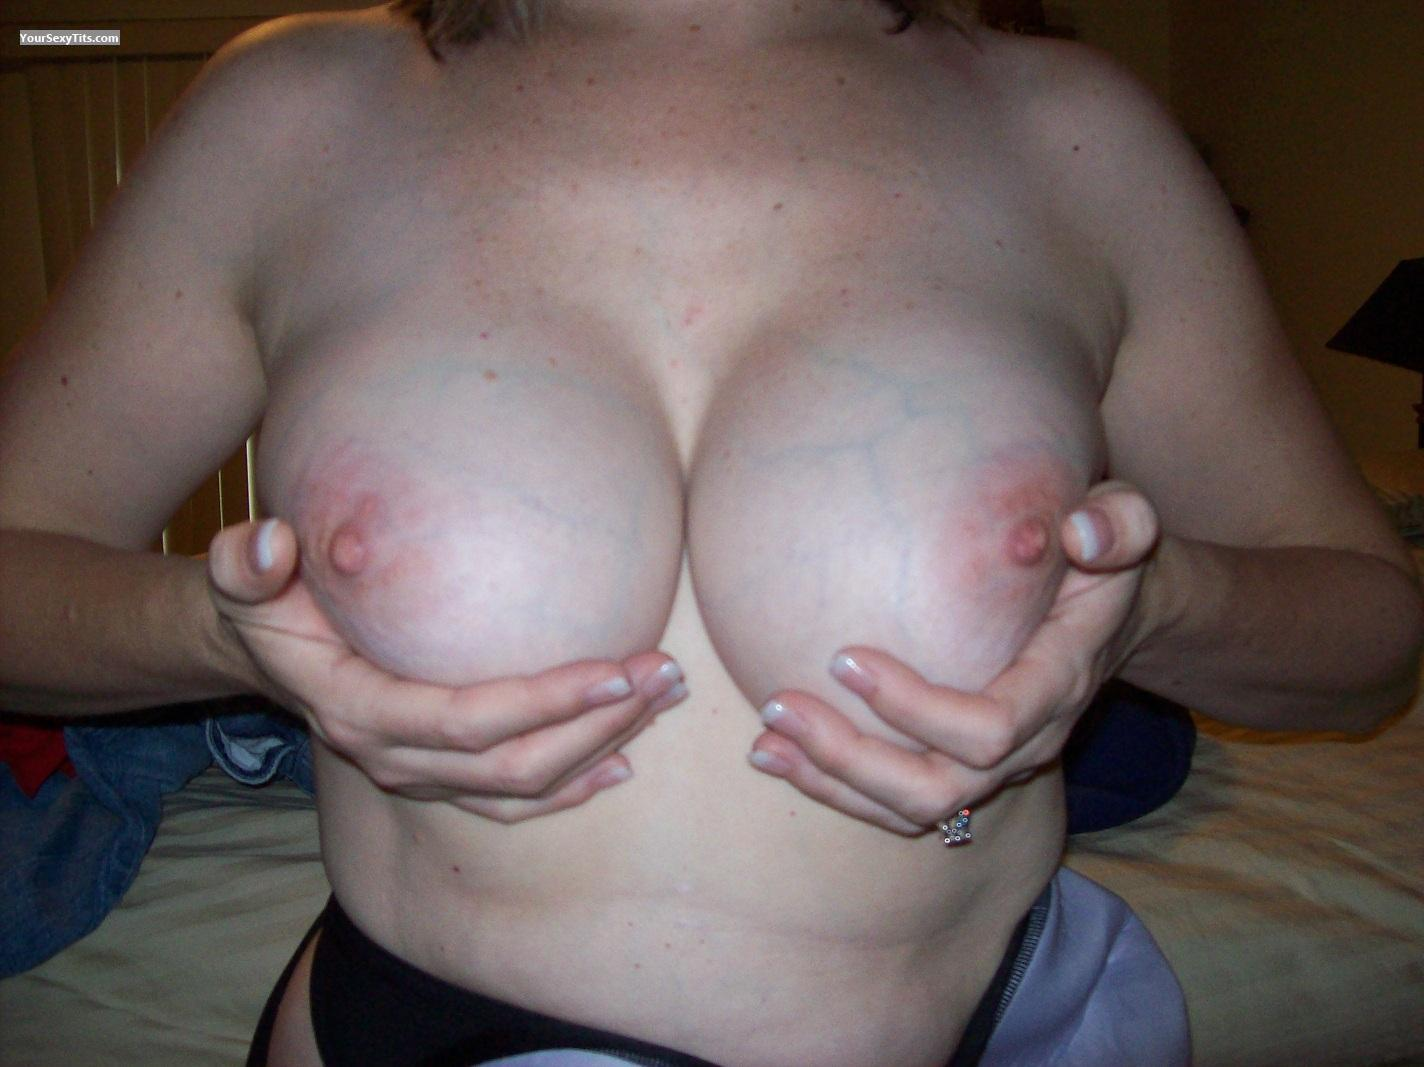 Tit Flash: Big Tits - BB75 from United States